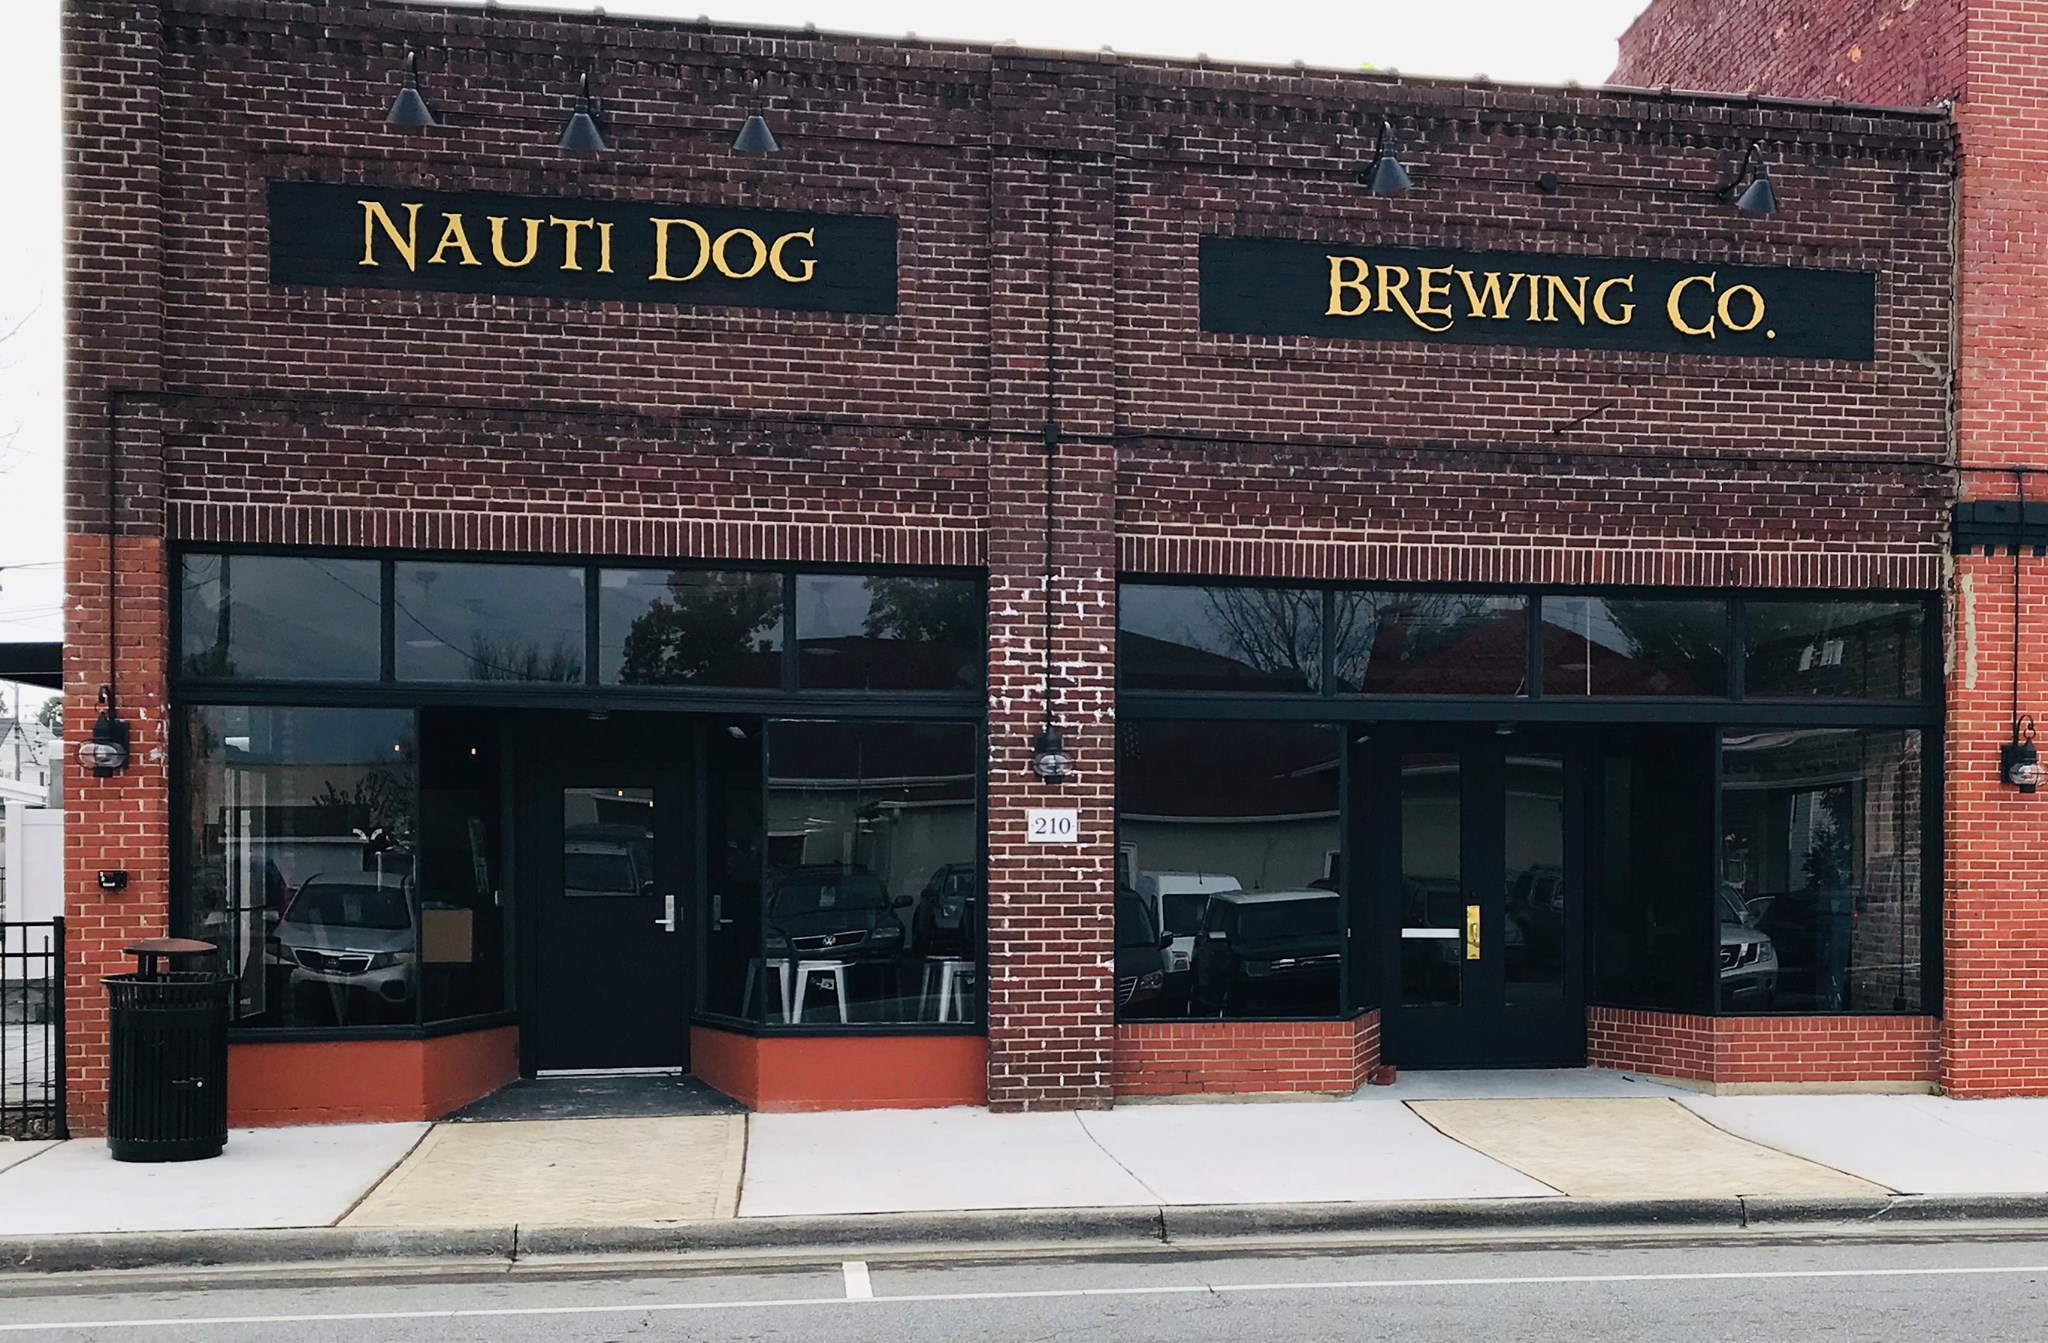 Nauti Dog Brewing Co. Store in Winterville